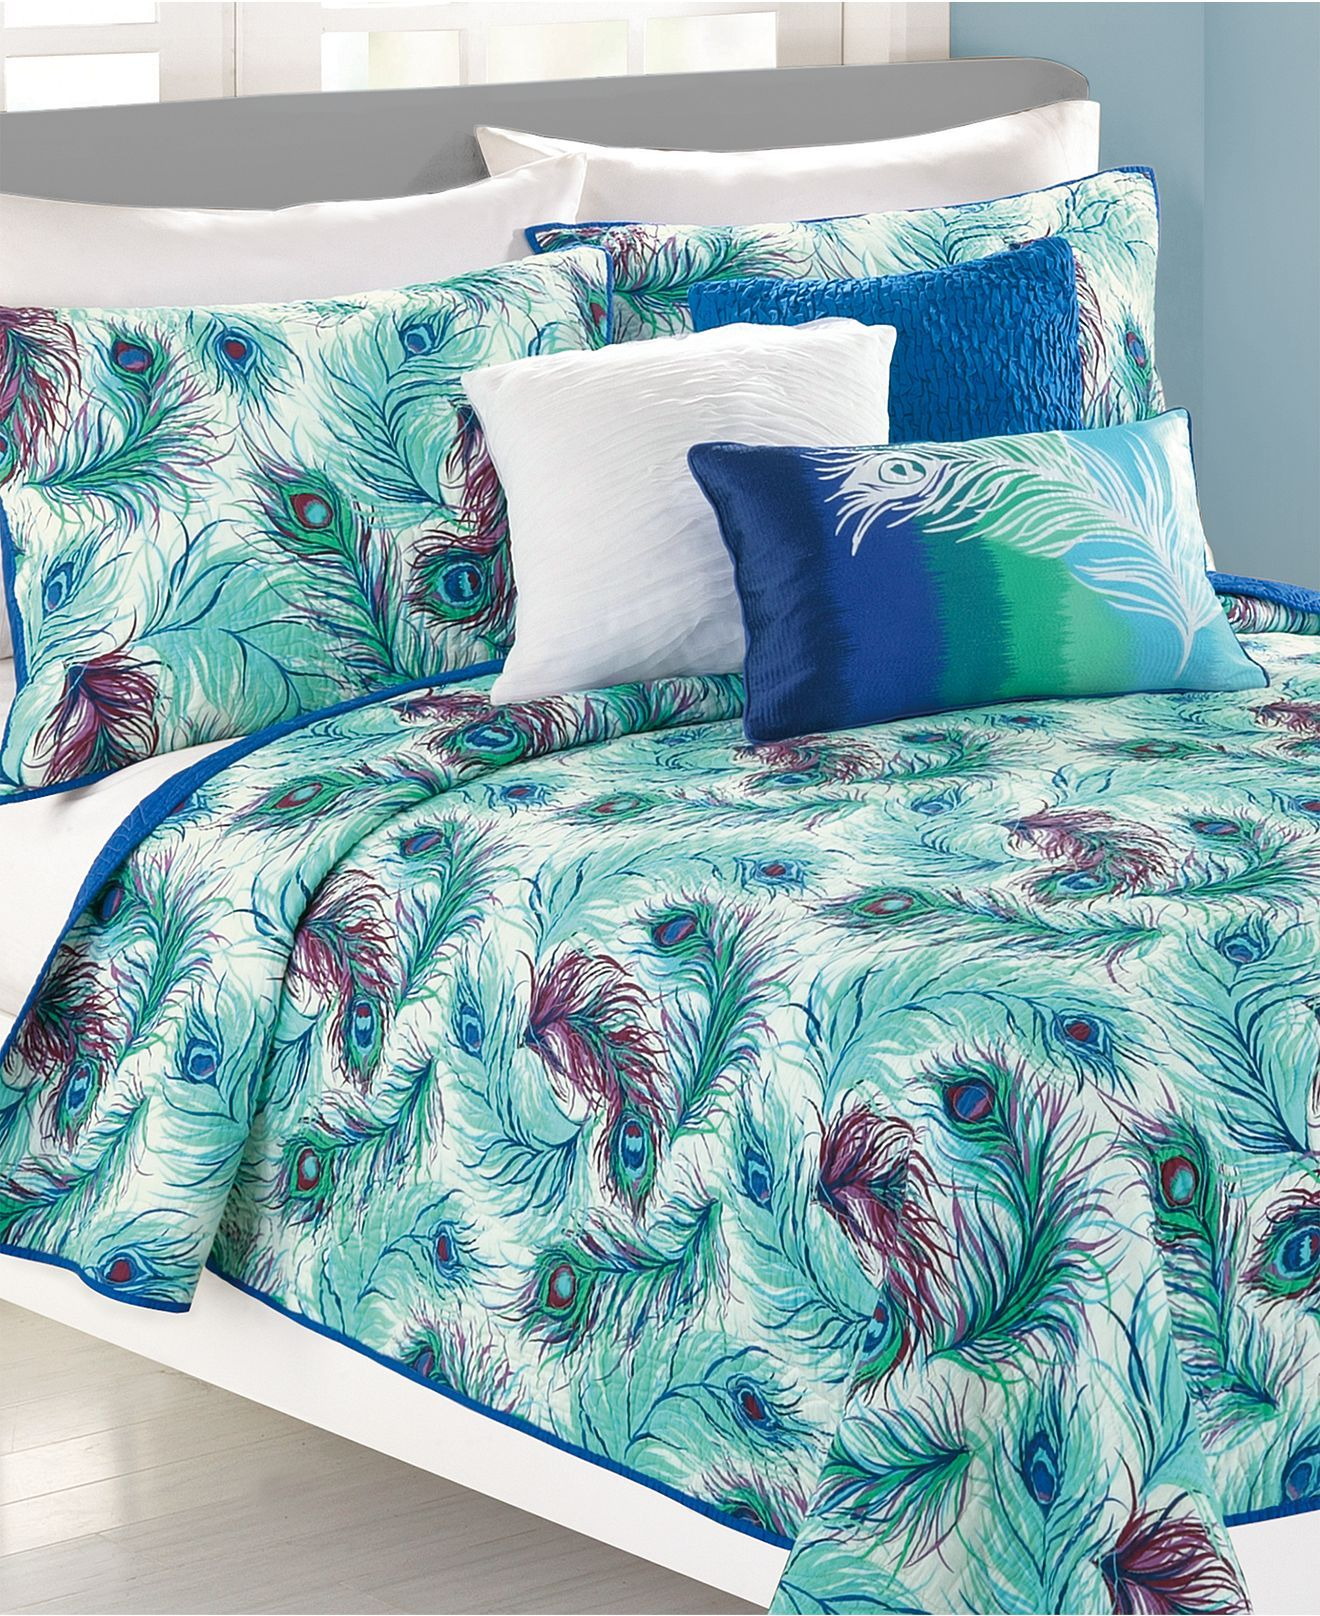 Peacock Bedroom Accessories Nanette Lepore Villa Peacock Coverlet Collection Bedding